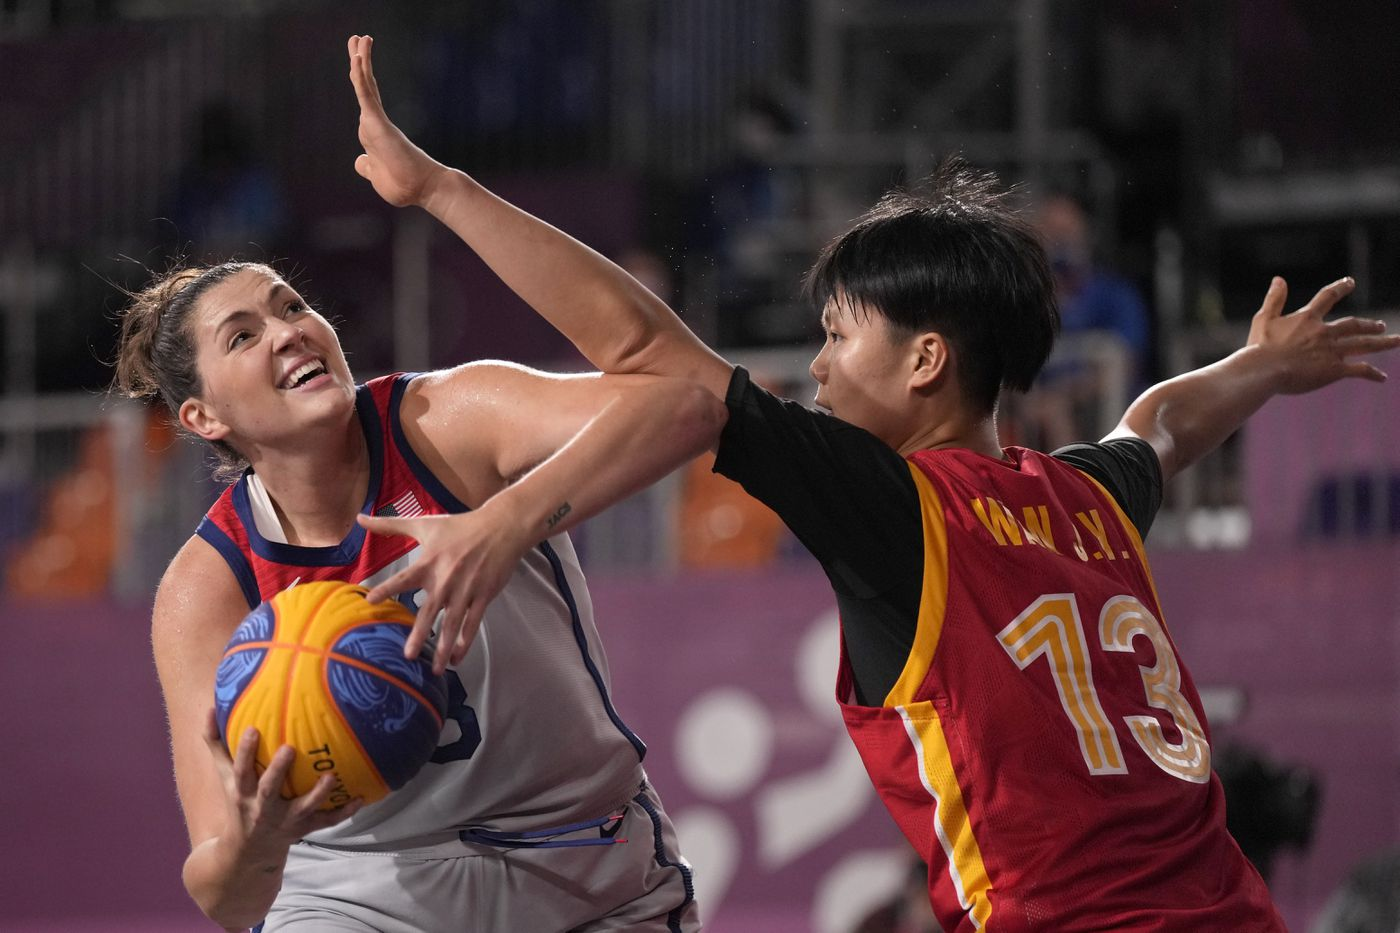 The towering Stefanie Dolson (6.5ft) playing against China's Wan Jiyuan during the women's tournament group stage.